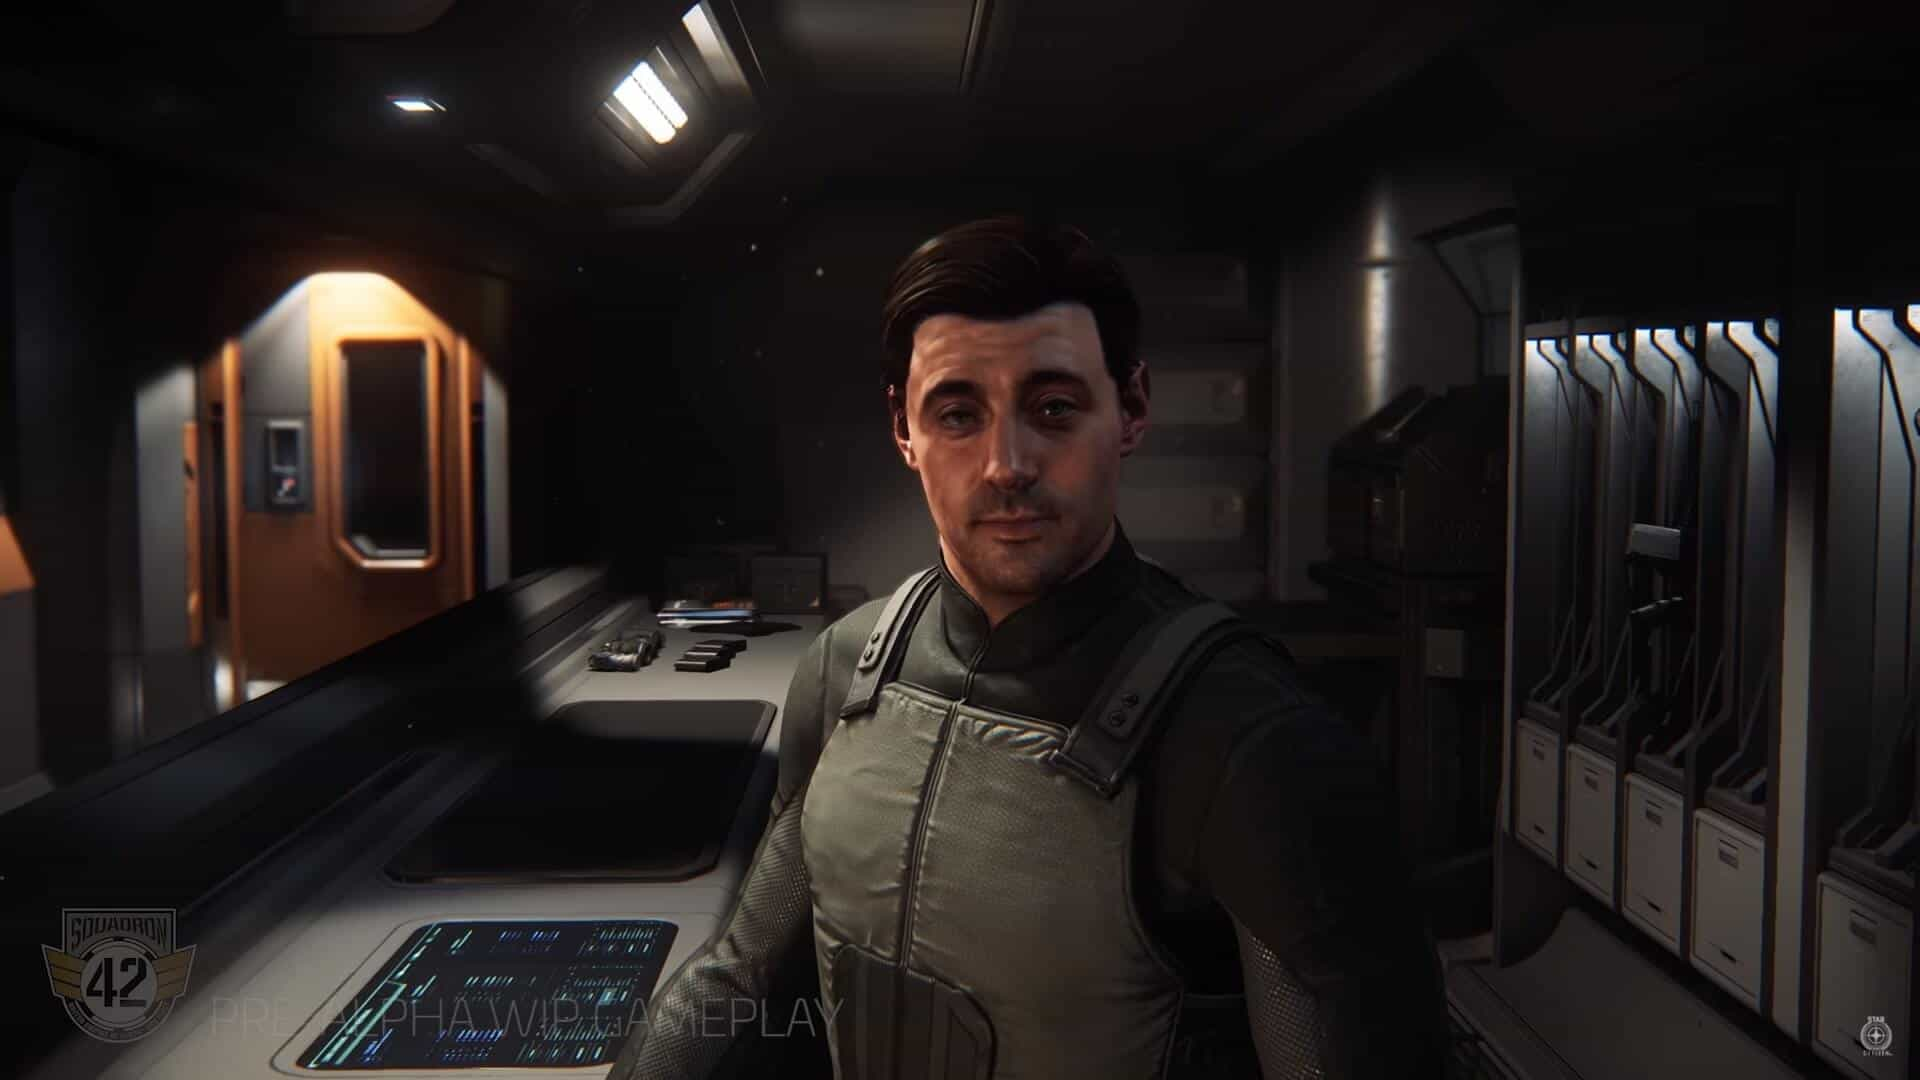 squadron 42 star citizen video ora - Pubblicato un video con un'ora di gameplay di Squadron 42